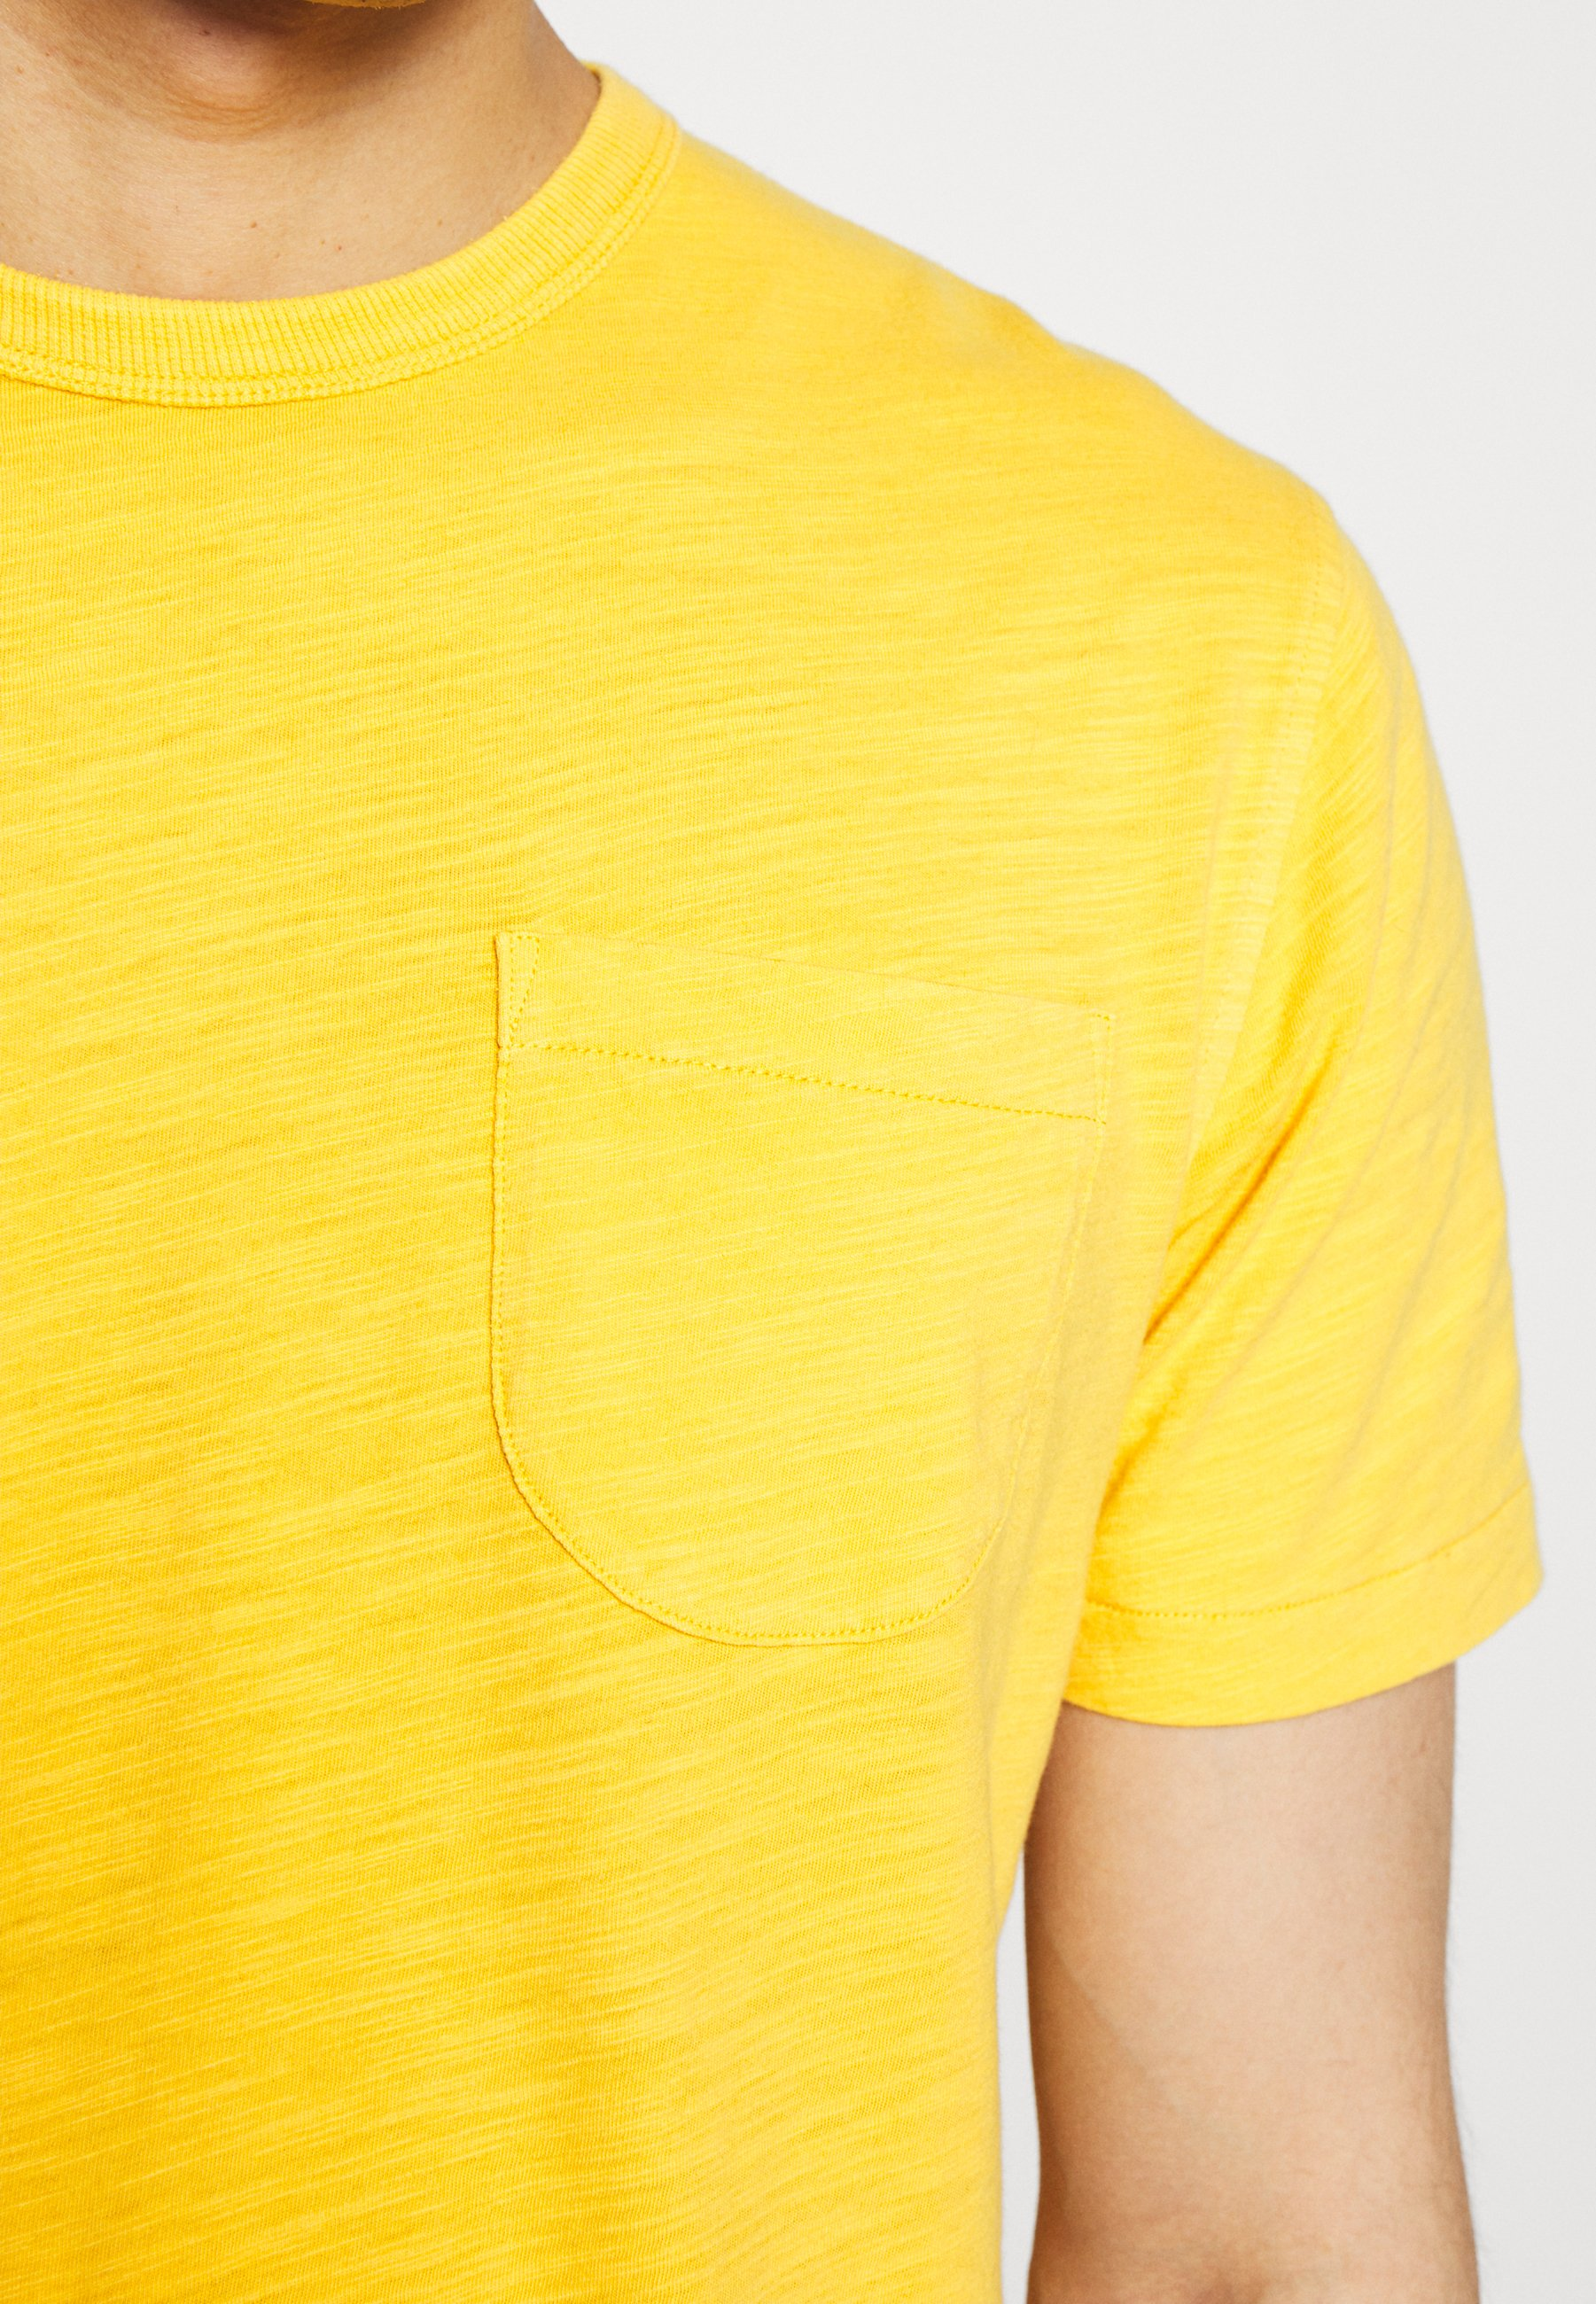 Ymc You Must Create Wild Ones Pocket Tee - T-shirt Bas Yellow